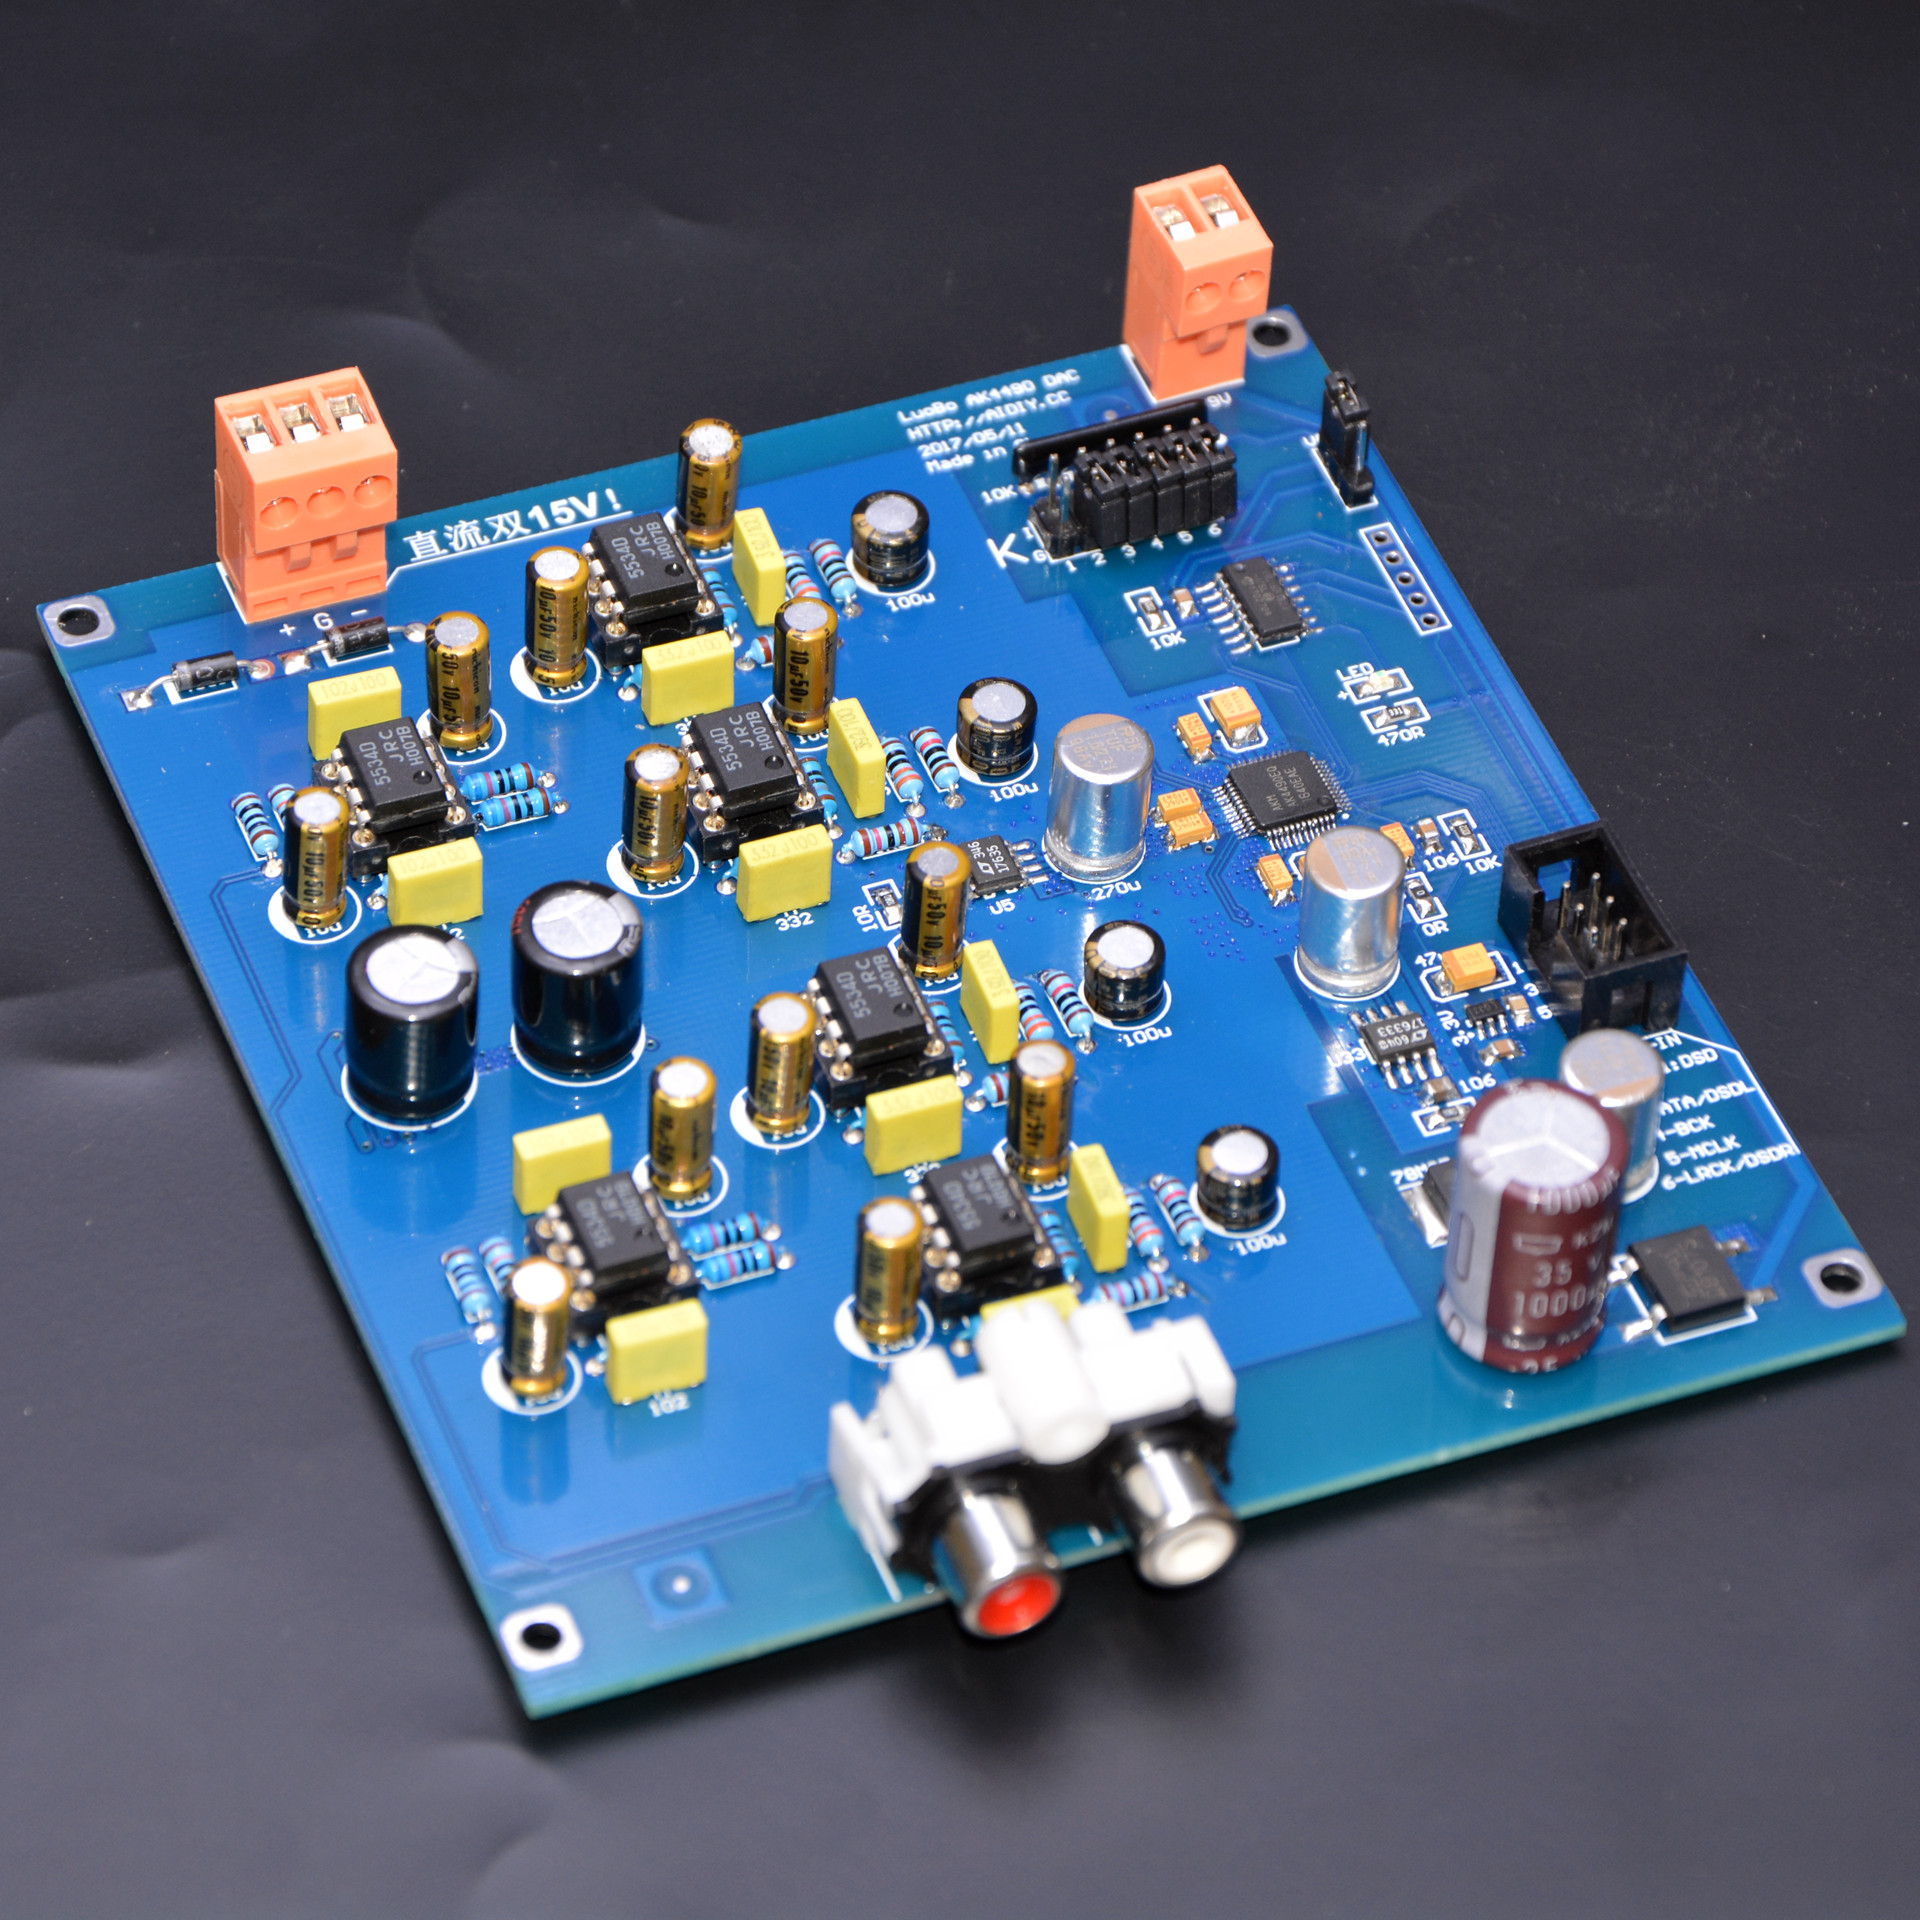 AK4490EQ DAC Decoder! Official Standard Circuit! I2S/DSD Input! Semi-finished Kit!